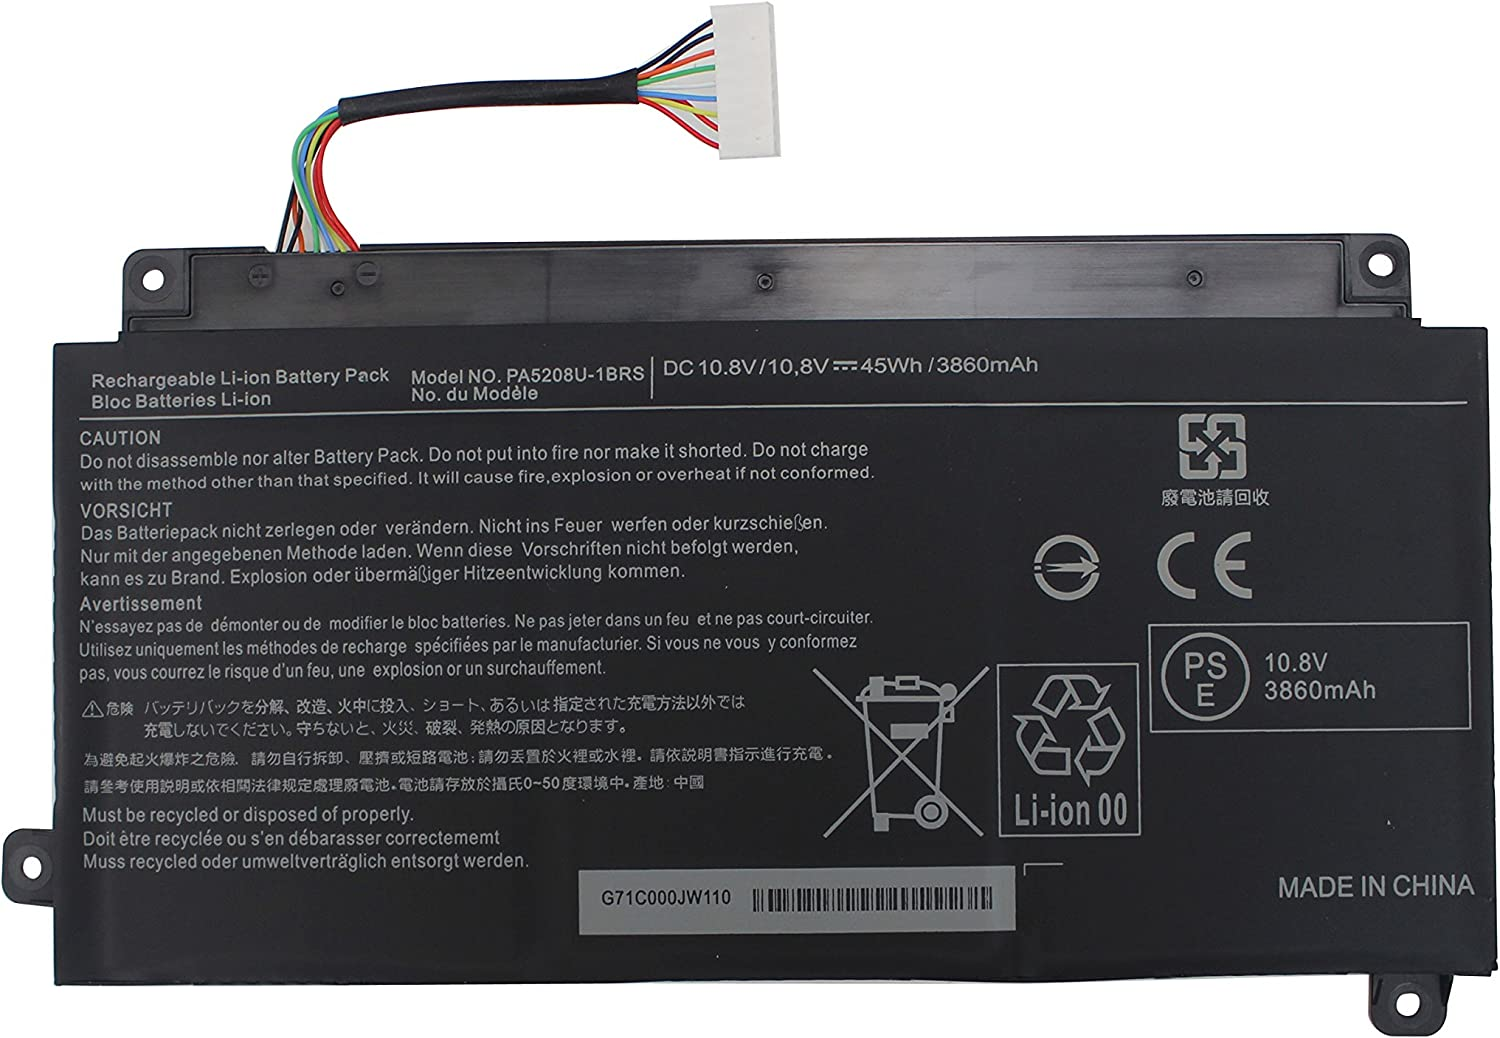 Shareway PA5208U Replacement Laptop Battery for Toshiba Chromebook 2 CB35-B CB35-B3330 Satellite P55W-C P55W-C5200X P55W-C5200D PA5208U-1BRS P000645710 [10.8V 3860Mah]